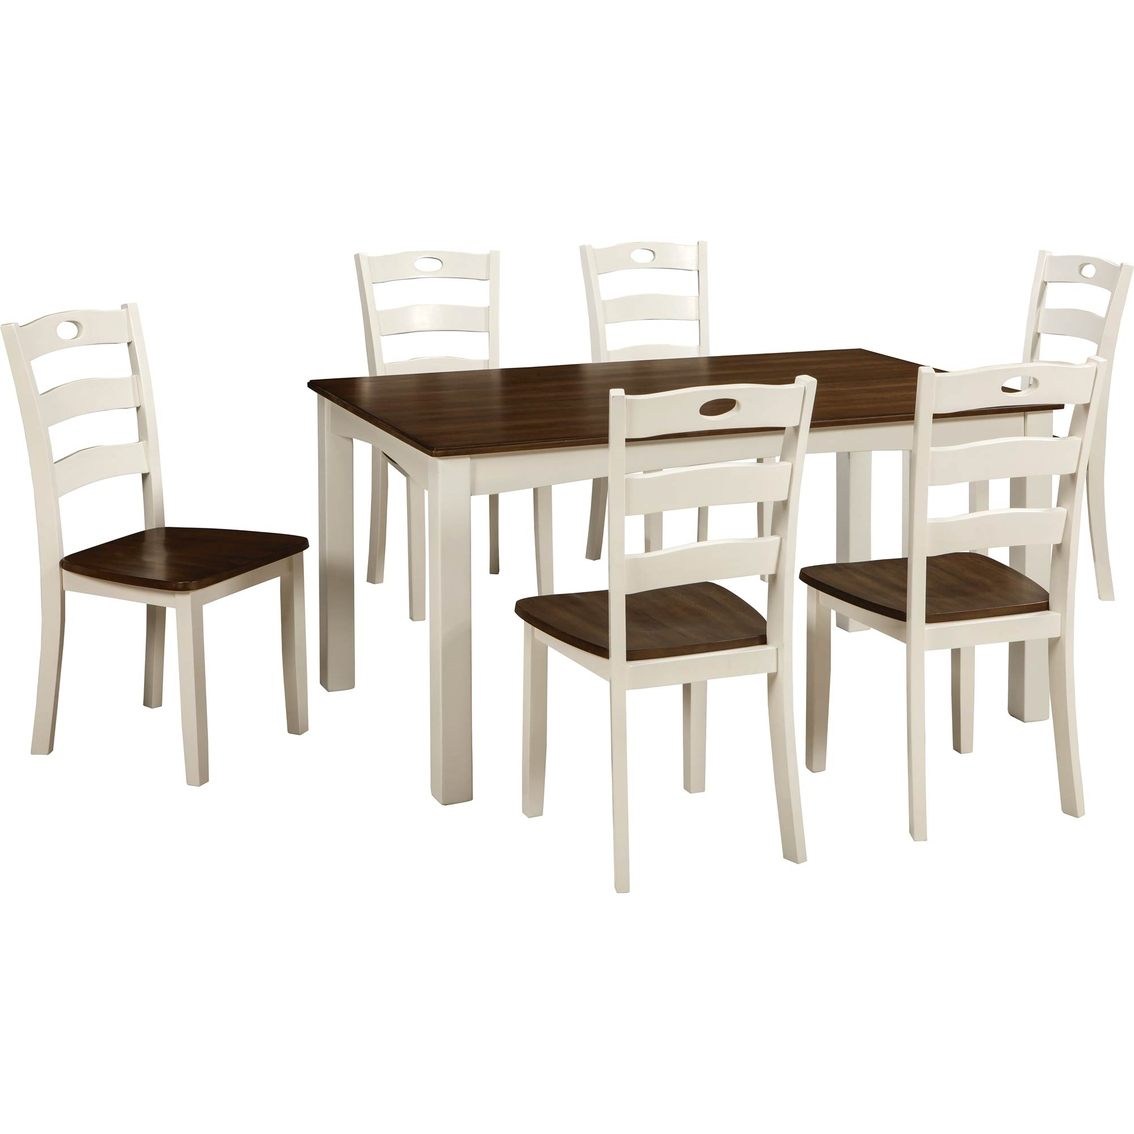 monarch double x back dining chairs unusual chair covers signature design by ashley woodanville room table